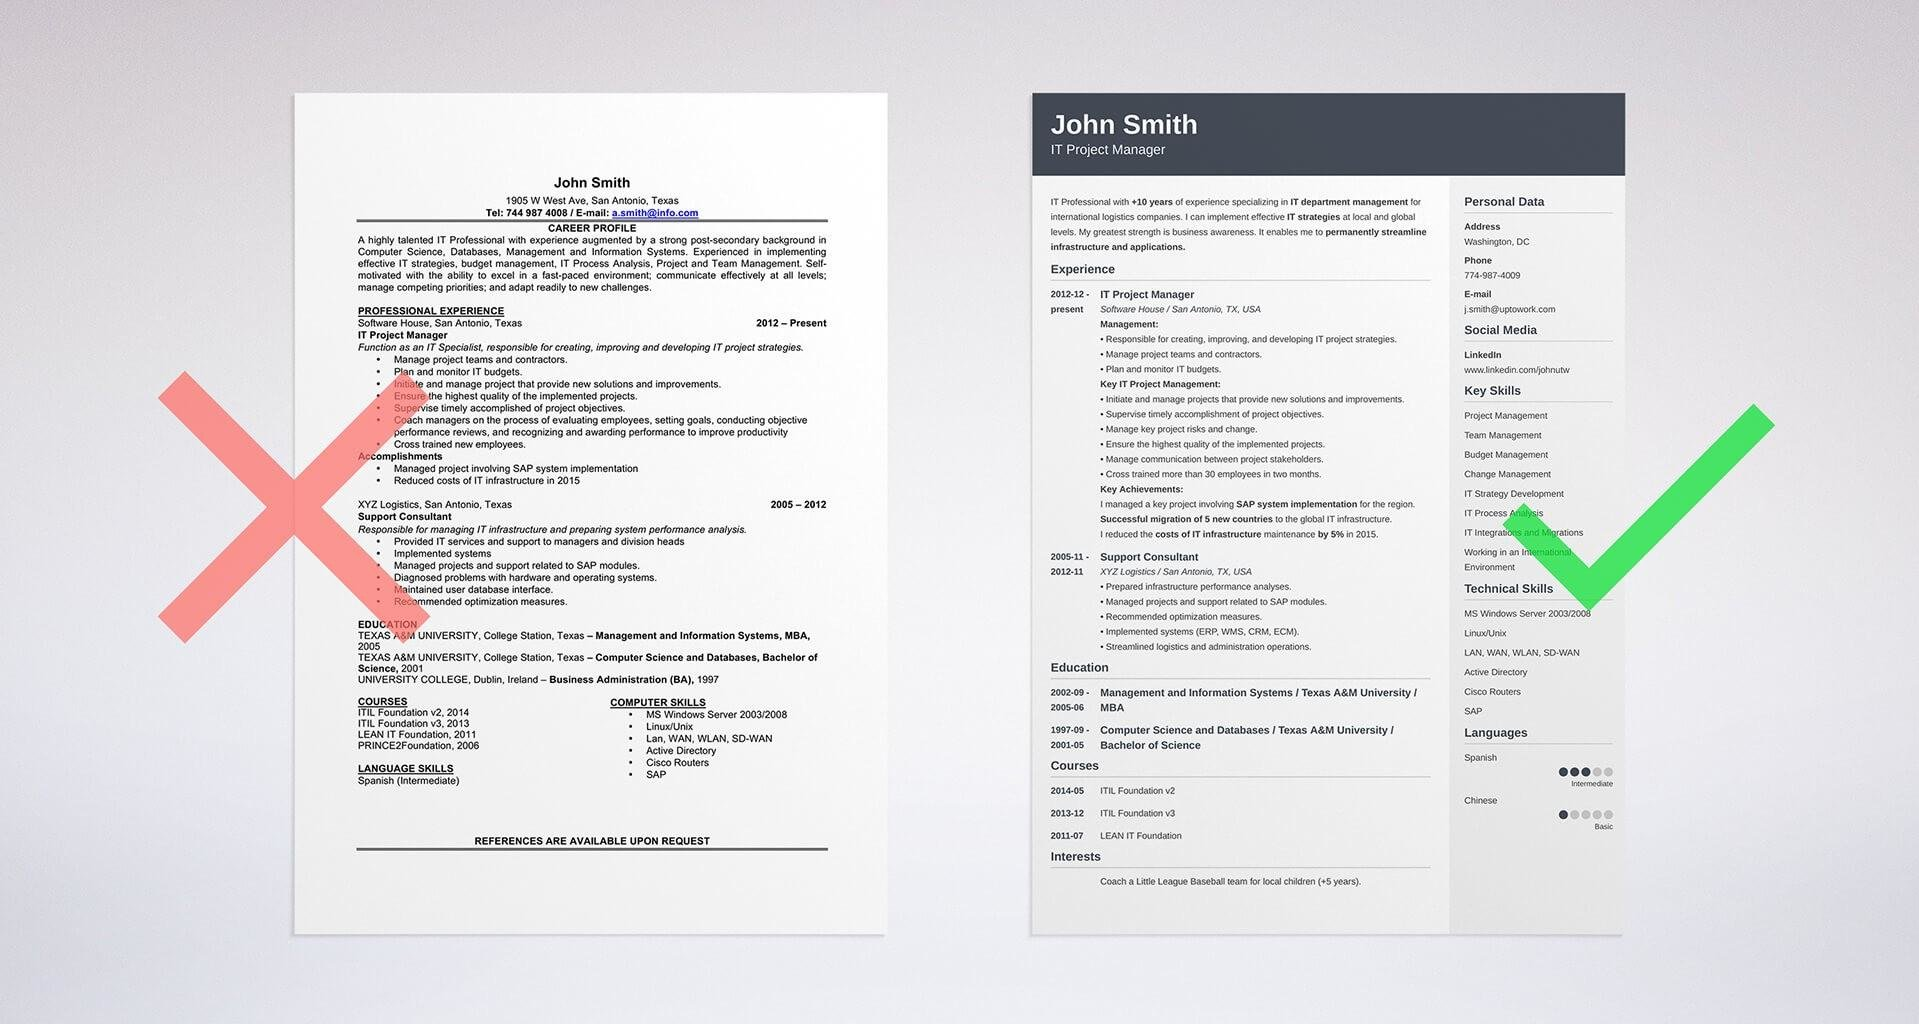 resume objective examples career objectives for all jobs keywords it makeover zoom sample Resume Resume Objective Keywords